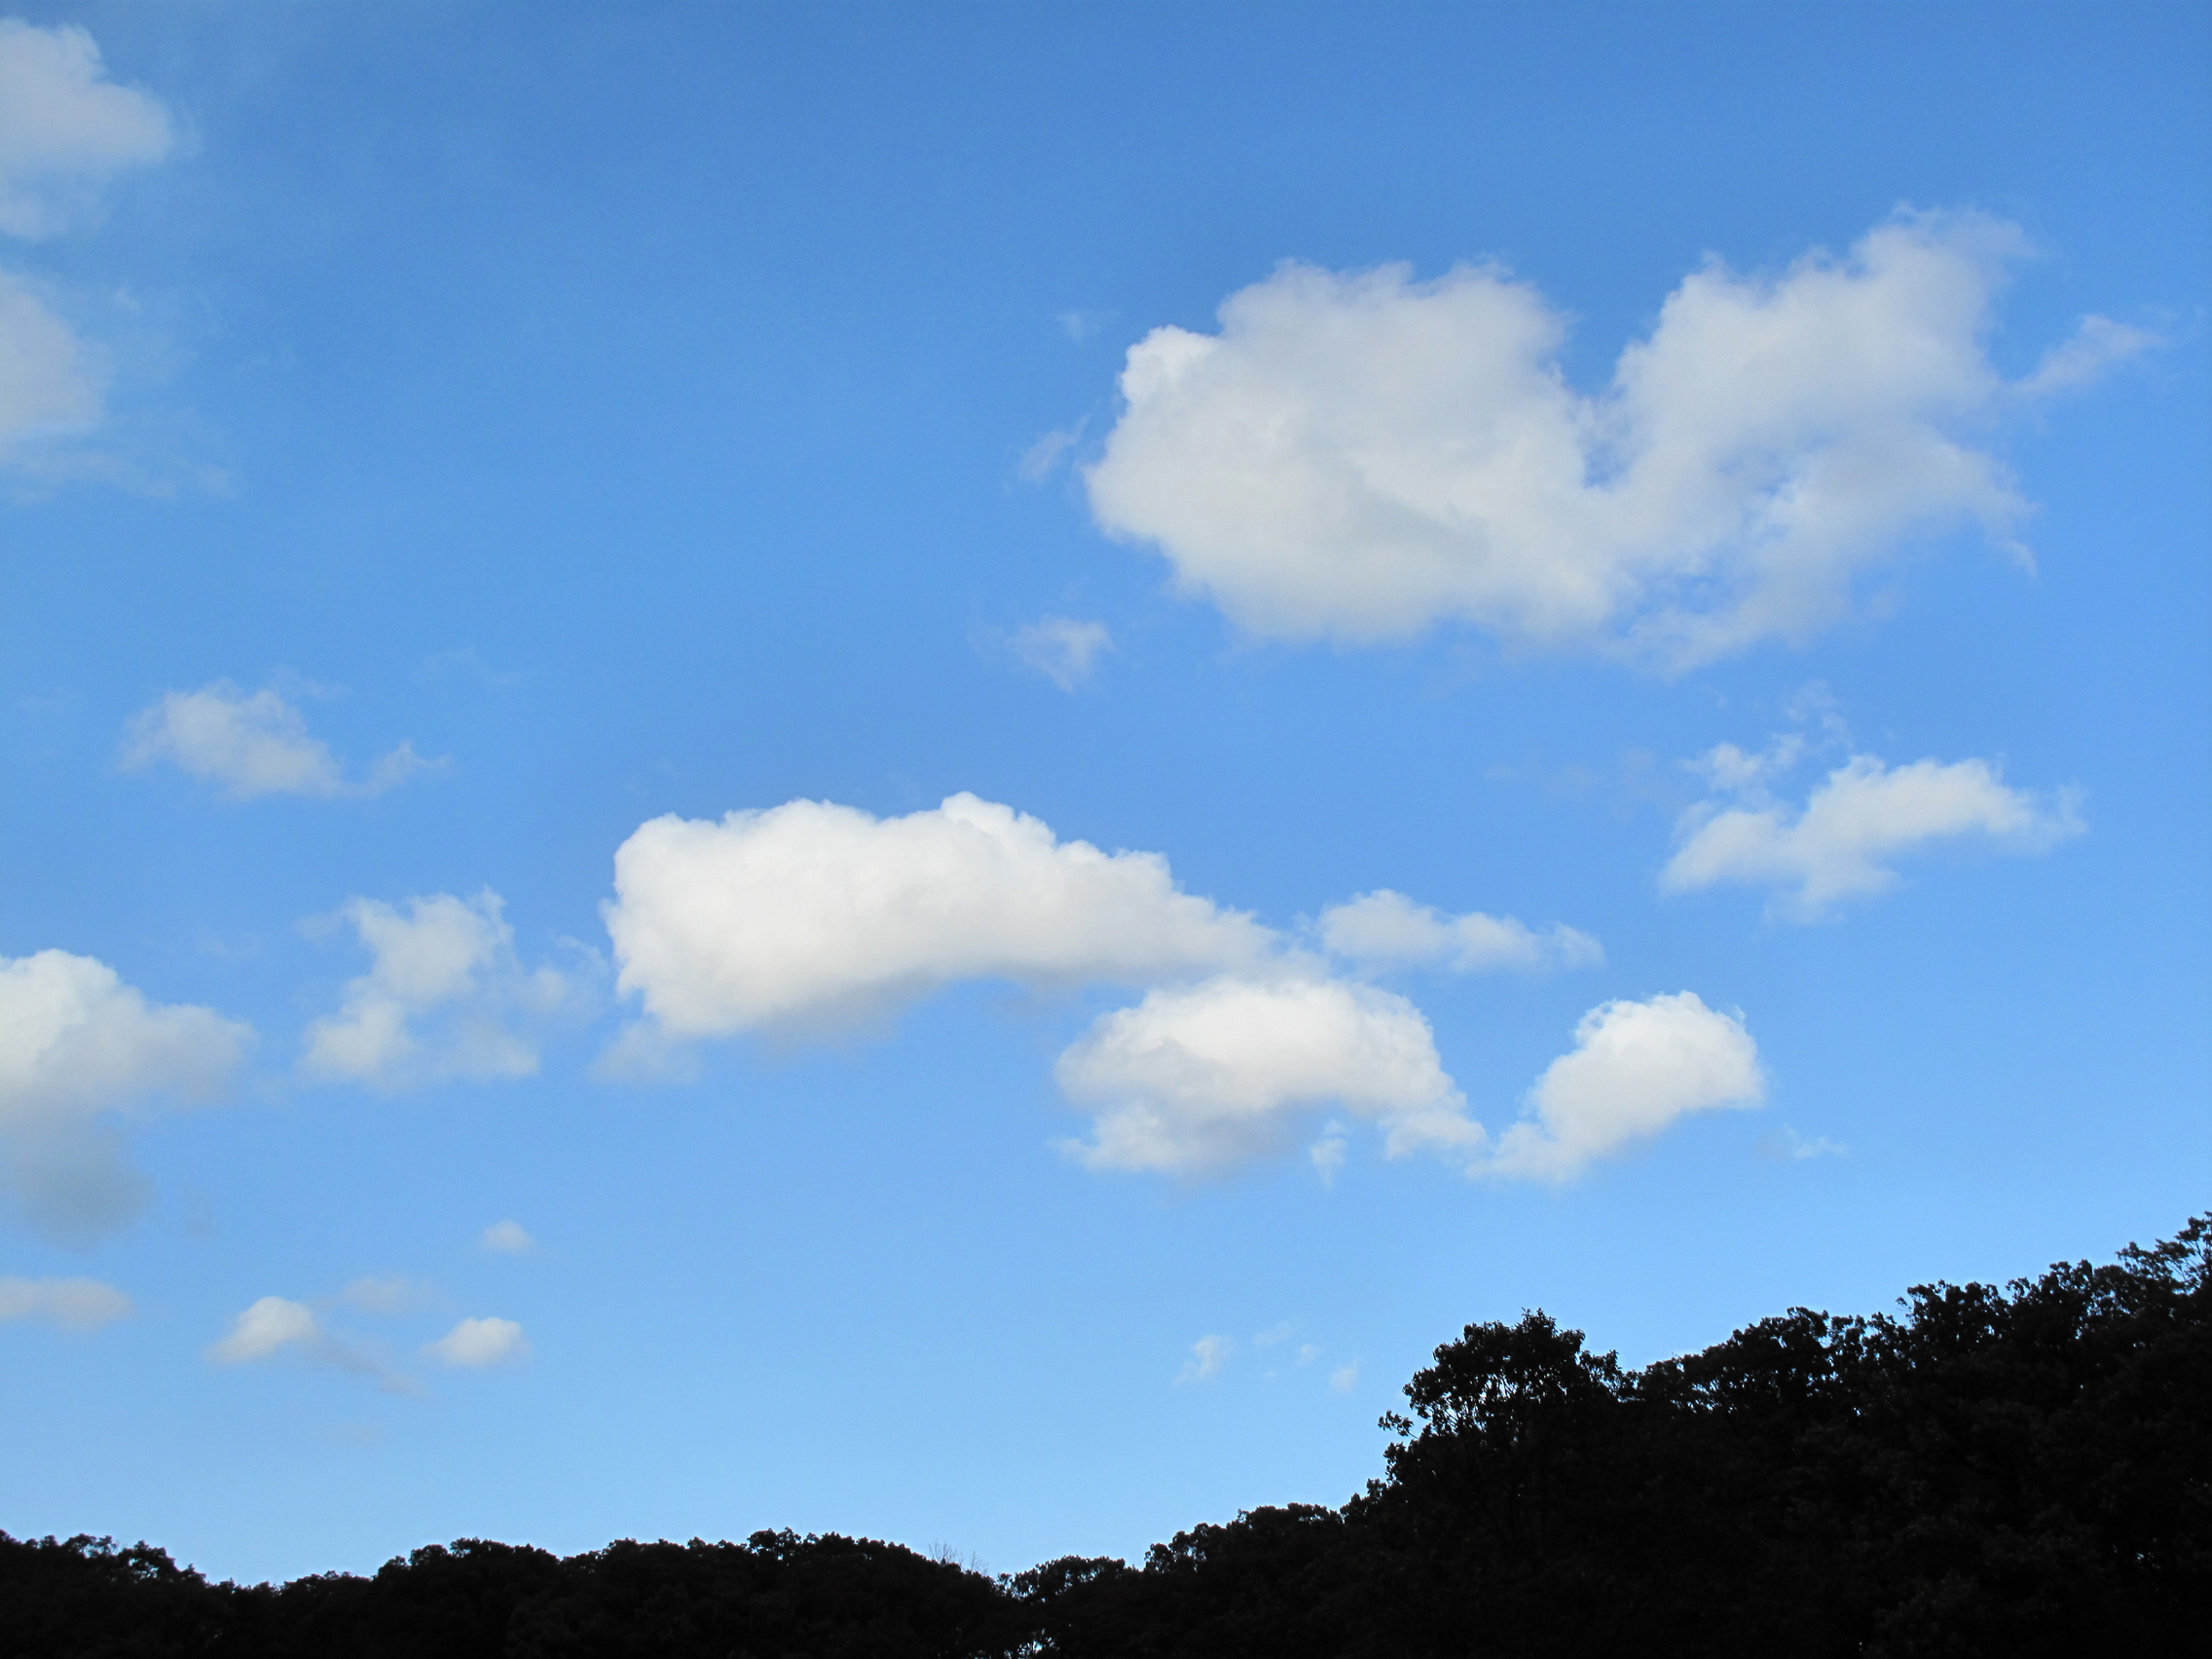 Free Photography Stock Clouds Free Stock Photo Image Picture Sunny Sky Cloudscape